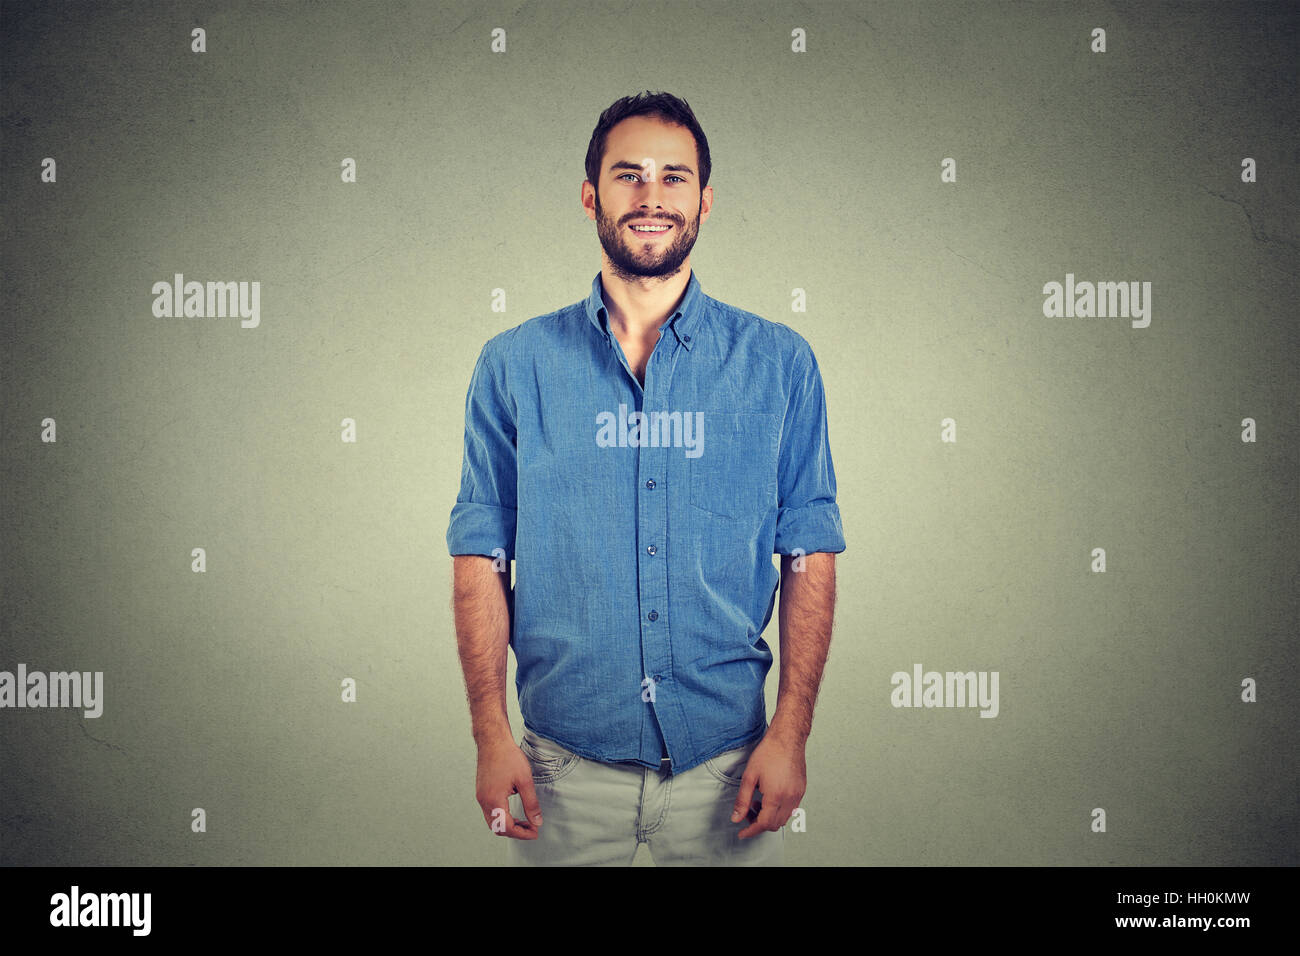 Portrait of a handsome young man smiling isolated against gray wall background - Stock Image